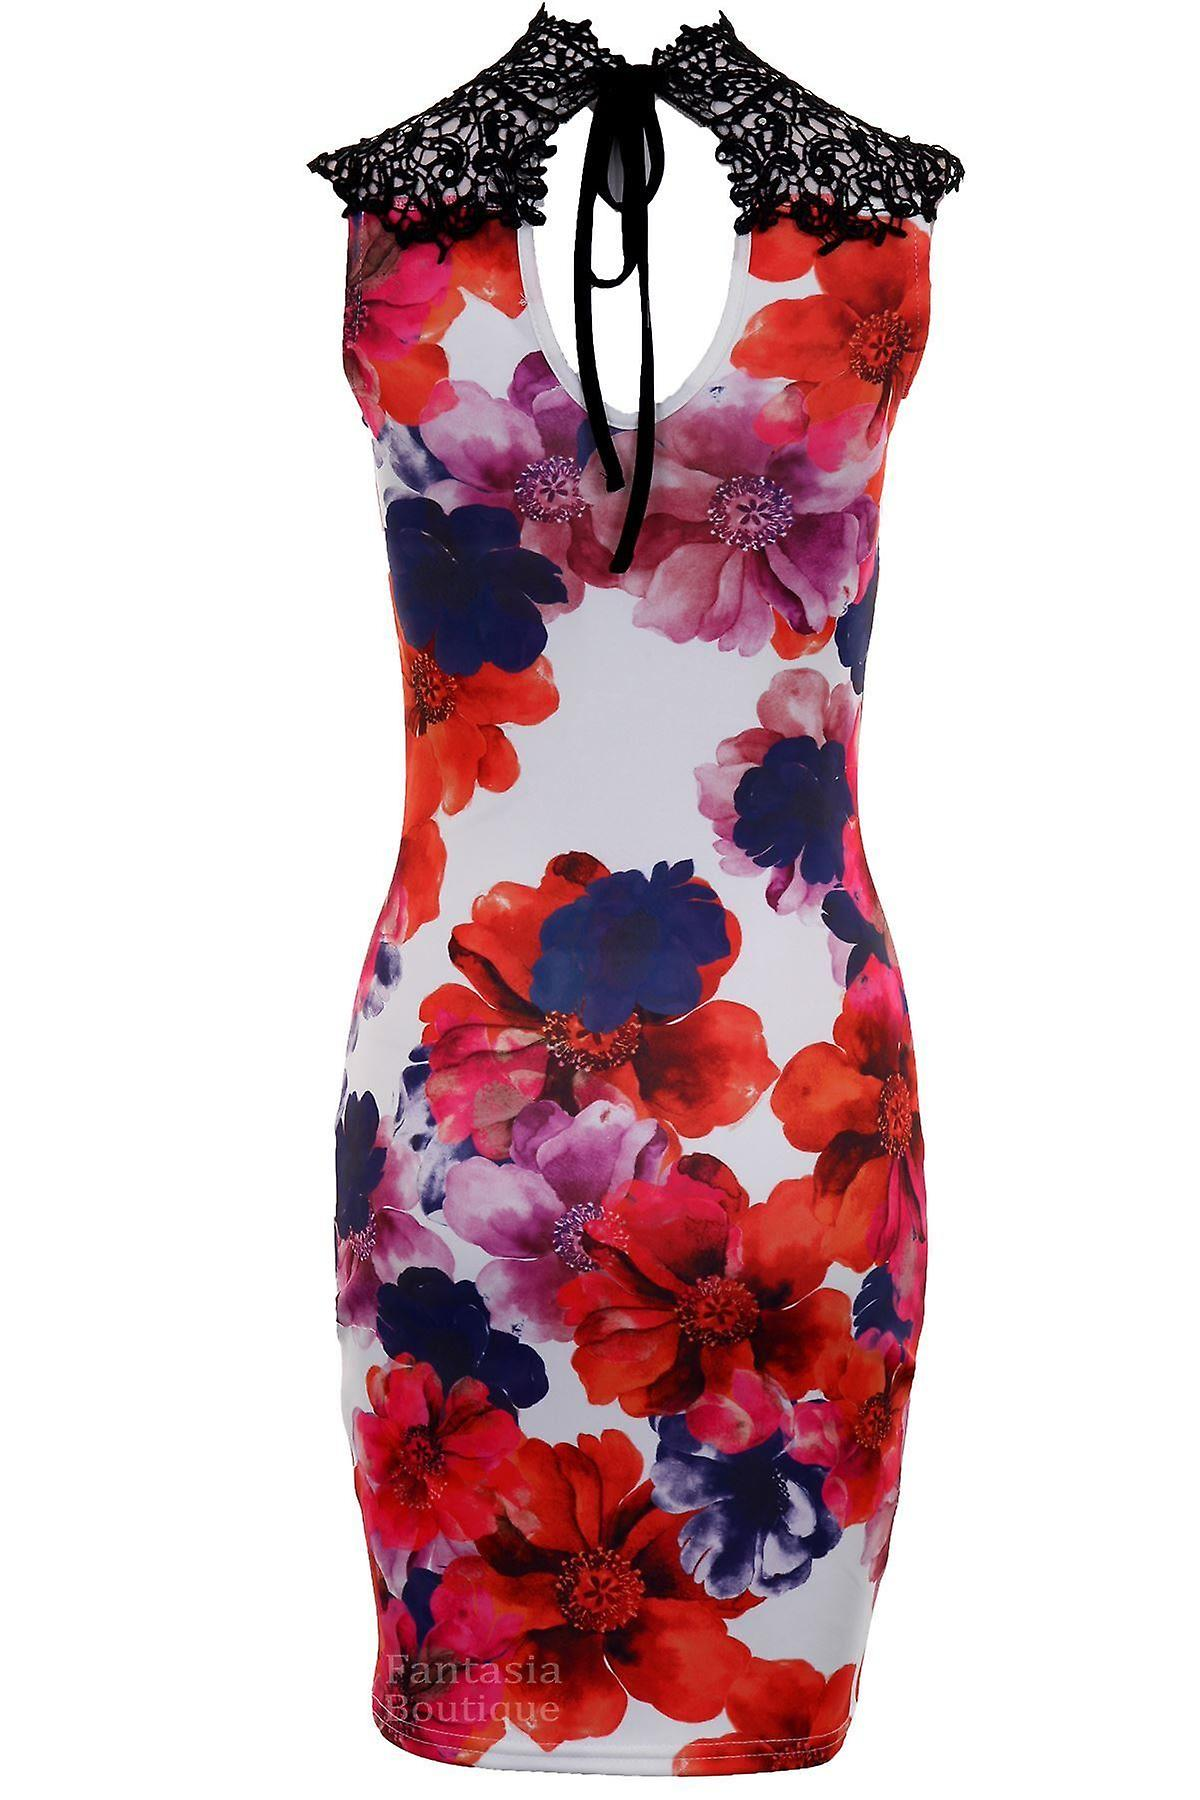 Ladies Floral Print Crochet Neck Sleeveless Evening Party Bodycon Women's Dress